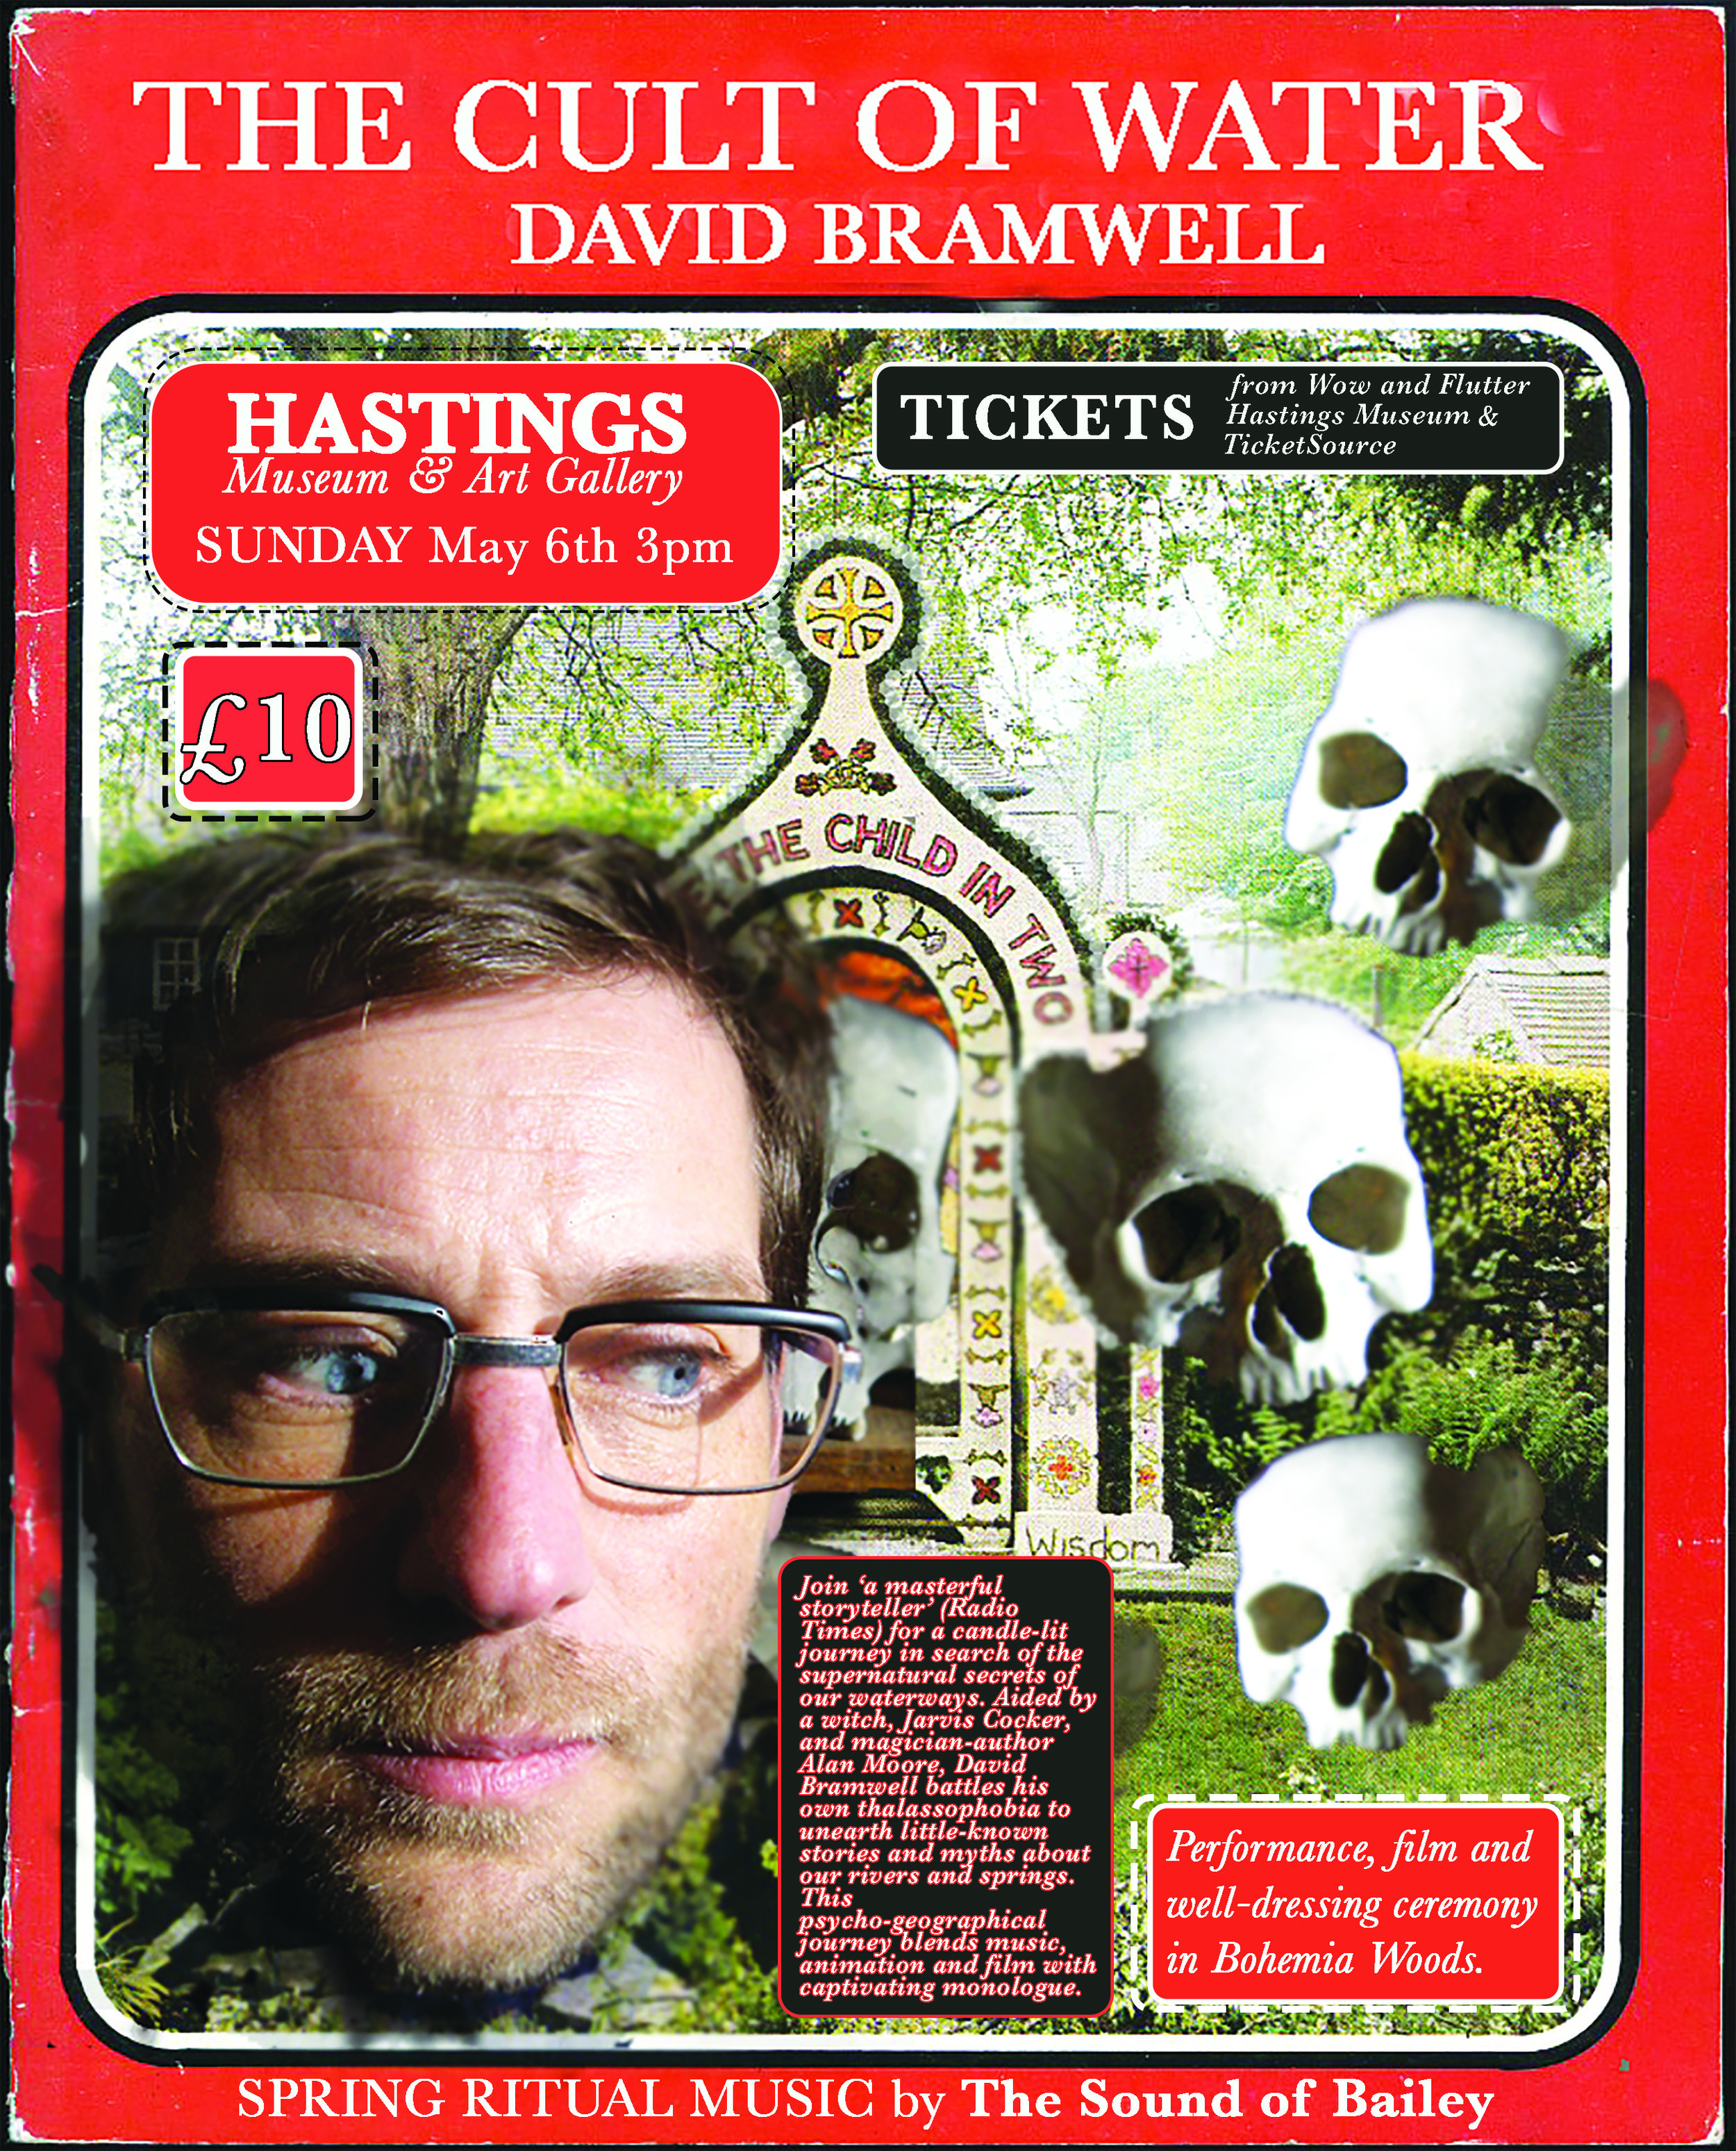 Join 'a masterful storyteller' (Radio Times) for a candle-lit journey in search of the supernatural secrets of our waterways.  Aided by a witch, Jarvis Cocker, and magician-author Alan Moore, David Bramwell battles his own thalassophobia (the fear of 'what lurks beneath') to unearth little-known stories and myths that surround our rivers.  The River Don is the focal point for this psycho-geographical journey that blends music, animation and film with captivating monologue.  David Bramwell takes audiences on a dream-like journey in search of the occult secrets of our waterways and a drowned village, which has long haunted his memories.  From Doncaster (where he grew up) Bramwell travels up the river Don and back in time, through the ladybird plague and drought of 1976 to the heavily polluted Don of Sheffield's steel industry, up into the Pennines and back into a pre-Christian era when rivers and springs were worshipped as living deities.  Along the journey Bramwell battles with his own thalassophobia (the fear of 'what lurks beneath'); learns about hydromancy from magician Alan Moore, discovers a unique forest of figs growing on the banks of the Don and encounters Jarvis Cocker on his own adventures, sailing down the Don on an inflatable inner tube.  His journey finally brings him face to face with the goddess of primordial waters, Danu, who gave her name to the Don.  The story climaxes in Hastings, with the remarkable discovery of an ancient spring and how it came to save the life of a dying man.  At heart this is a meditation on the symbolic power of rivers and inland waterways and the profound ways in which they affect our sense of well-being.  As a special Hastings feature of this performance, we shall begin at the Mock Roman Bath in Summerfields Woods for a well-dressing ceremony, with ritual spring music performed by The Sound of Bailey. We invite attendees to bring flowers to dedicate to the spirits of the spring.  LAST FEW TICKETS - Book over the phone by tex